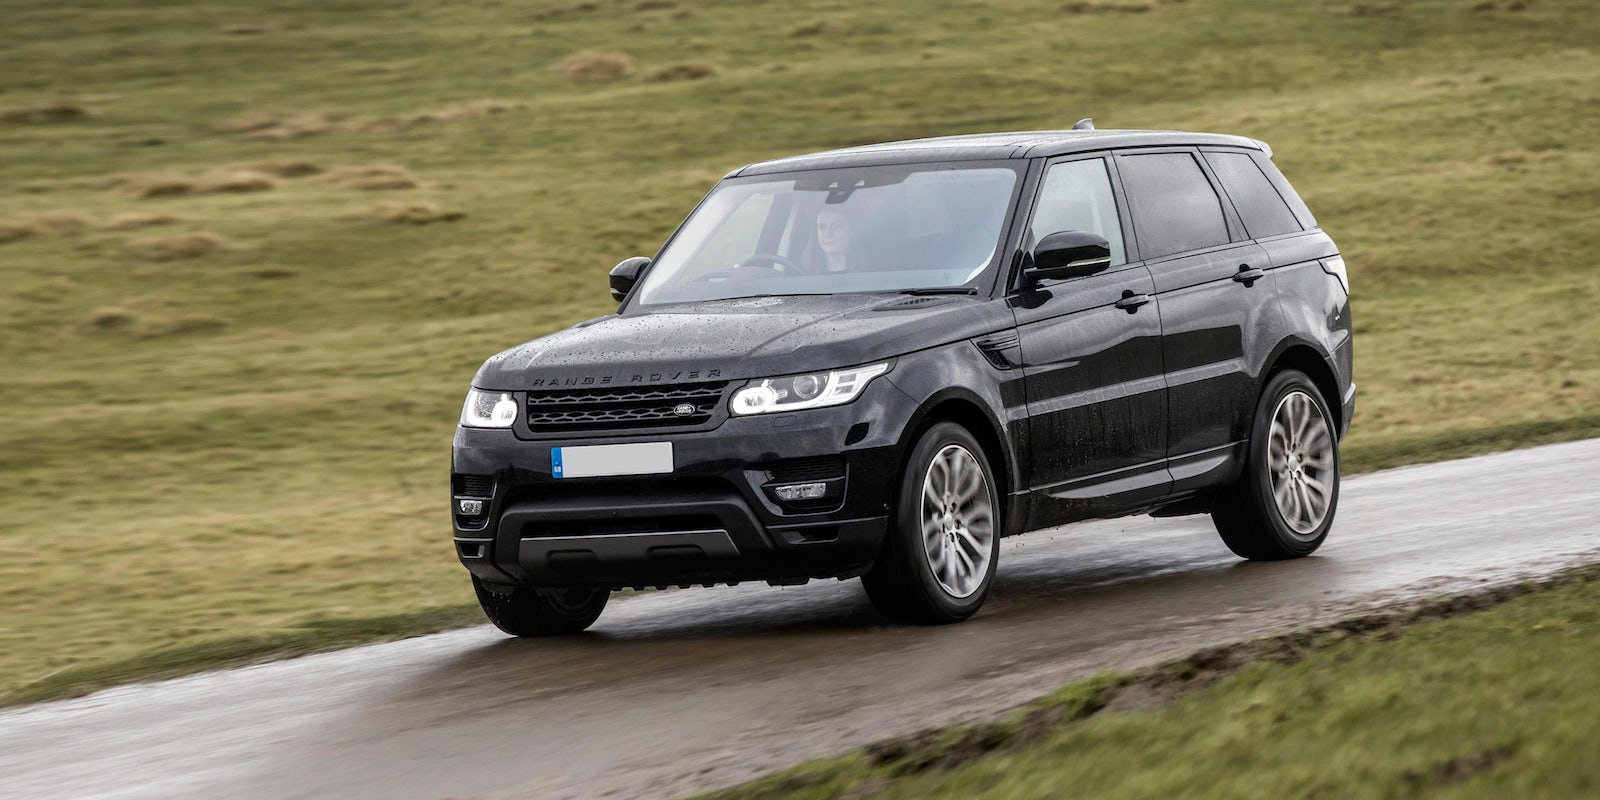 land rover range rover sport specifications carwow. Black Bedroom Furniture Sets. Home Design Ideas